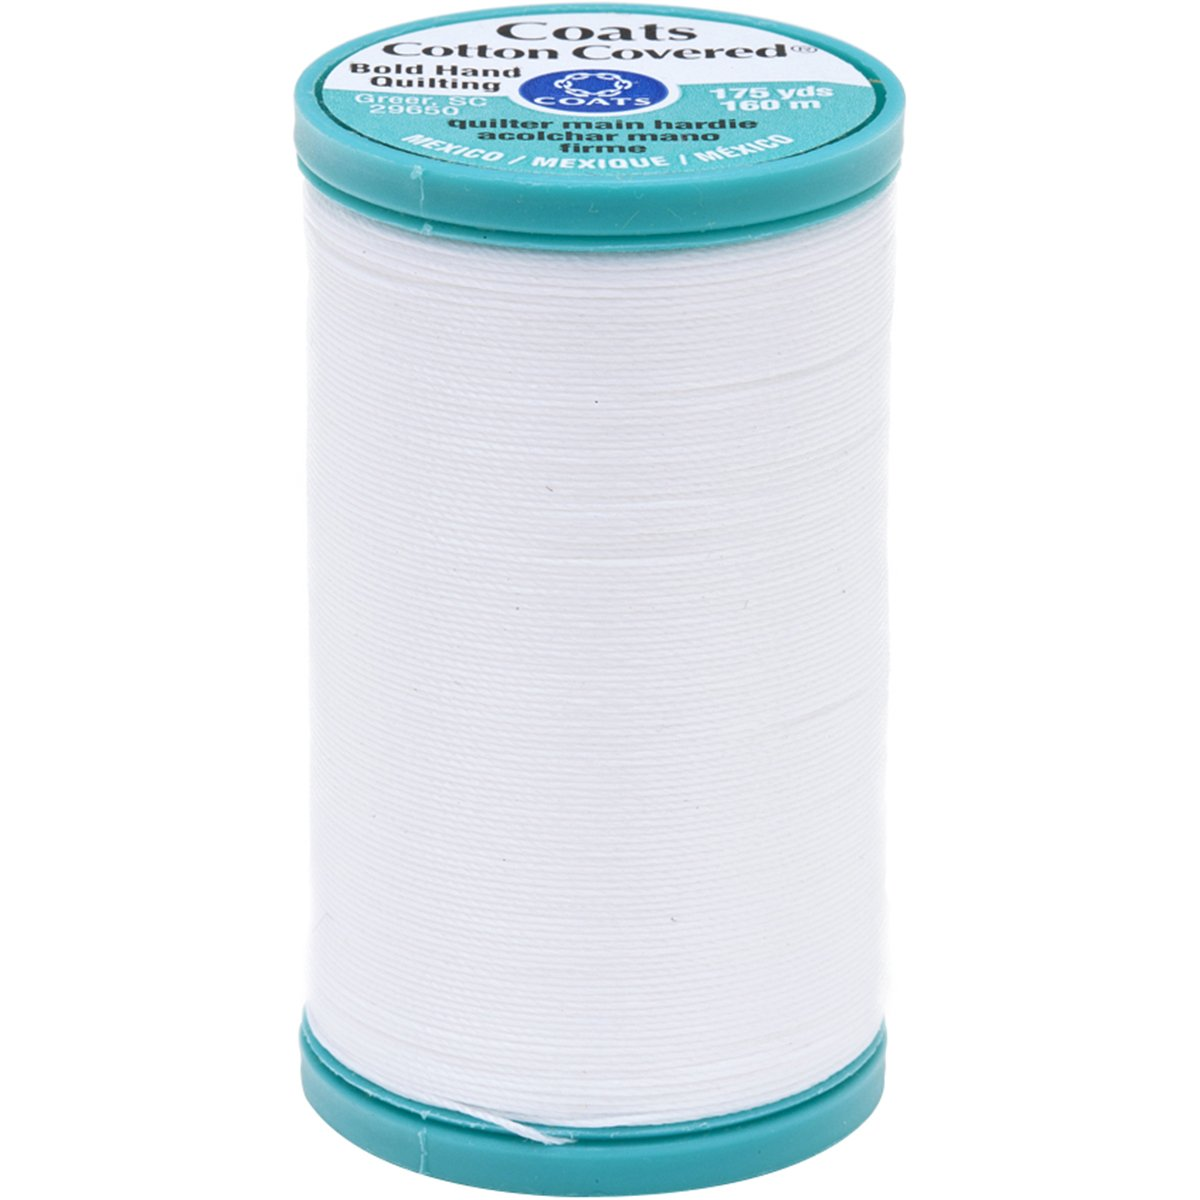 Coats Bold Hand Quilting Thread White 175-Yard